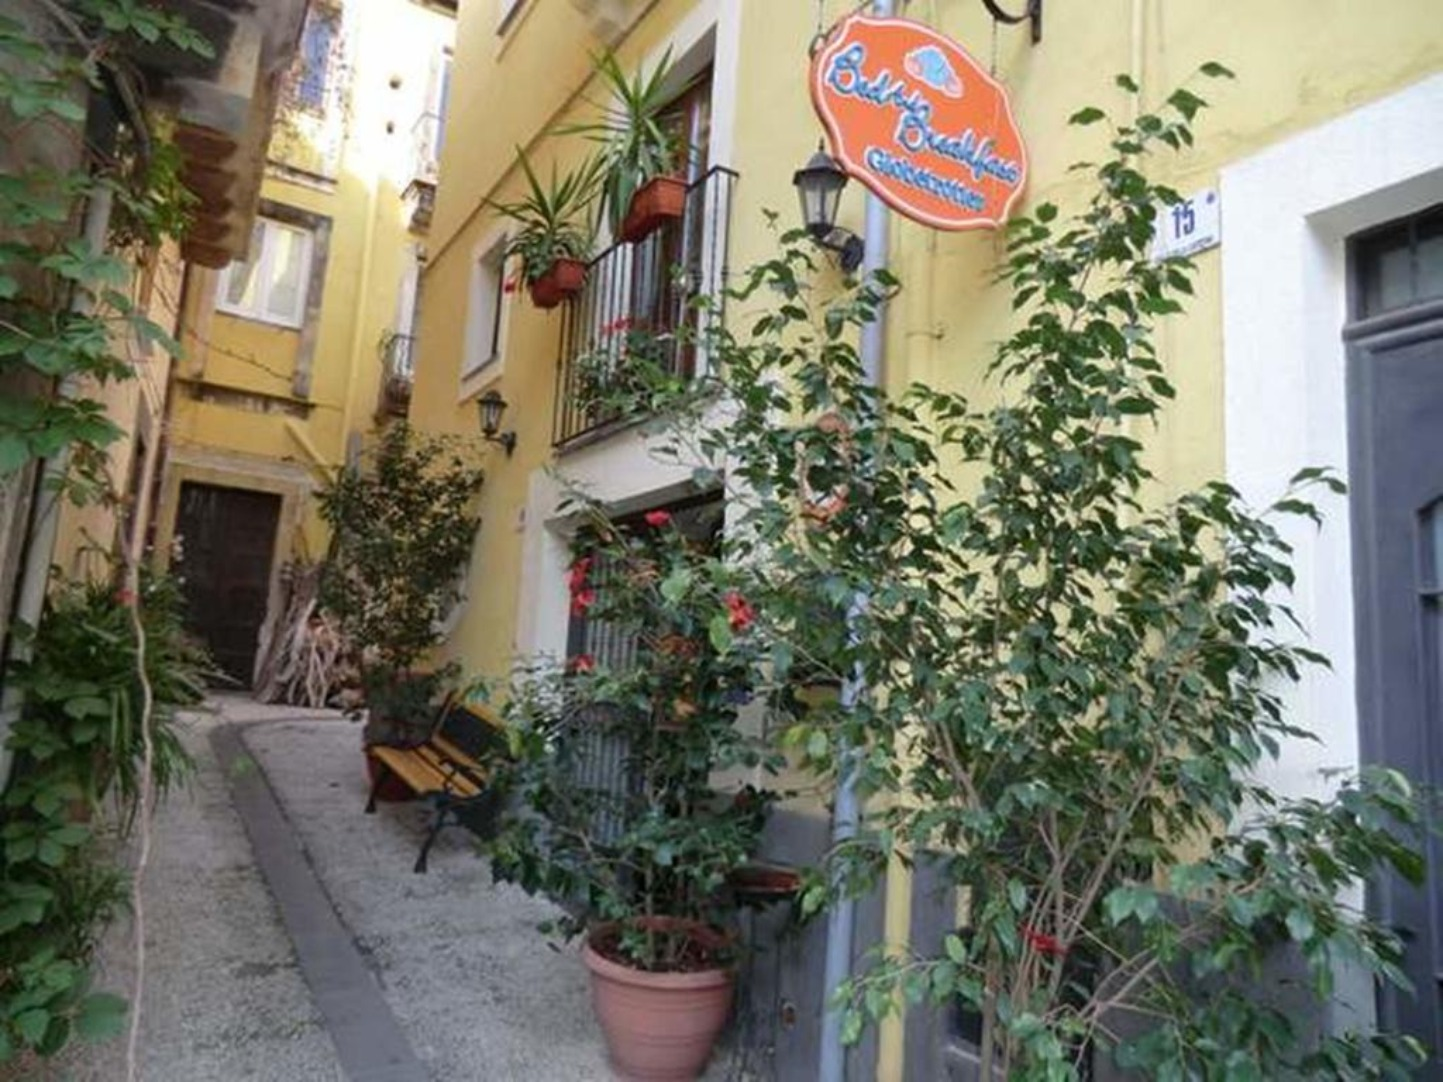 A tree in front of a building at Globetrotter Catania.